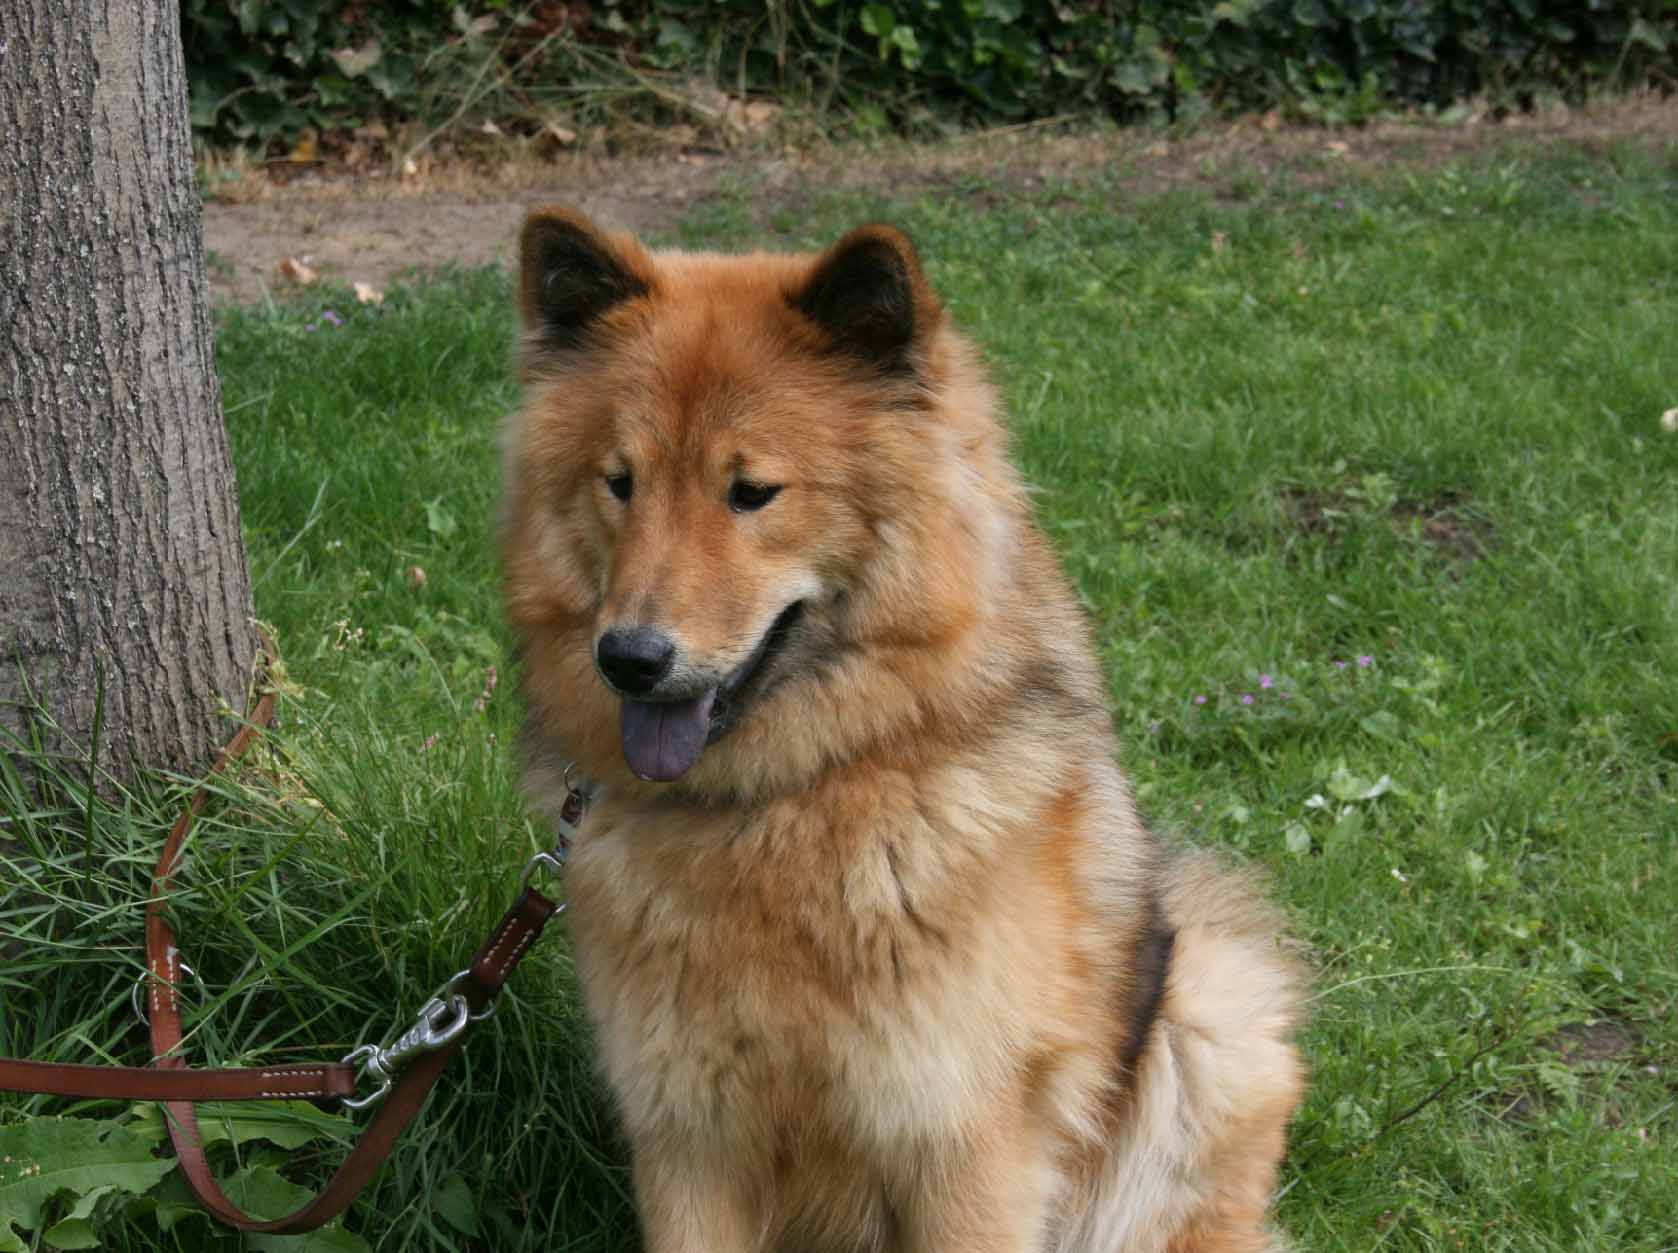 Cute Wallpaper Images For Desktop Eurasier Dog On The Grass Photo And Wallpaper Beautiful